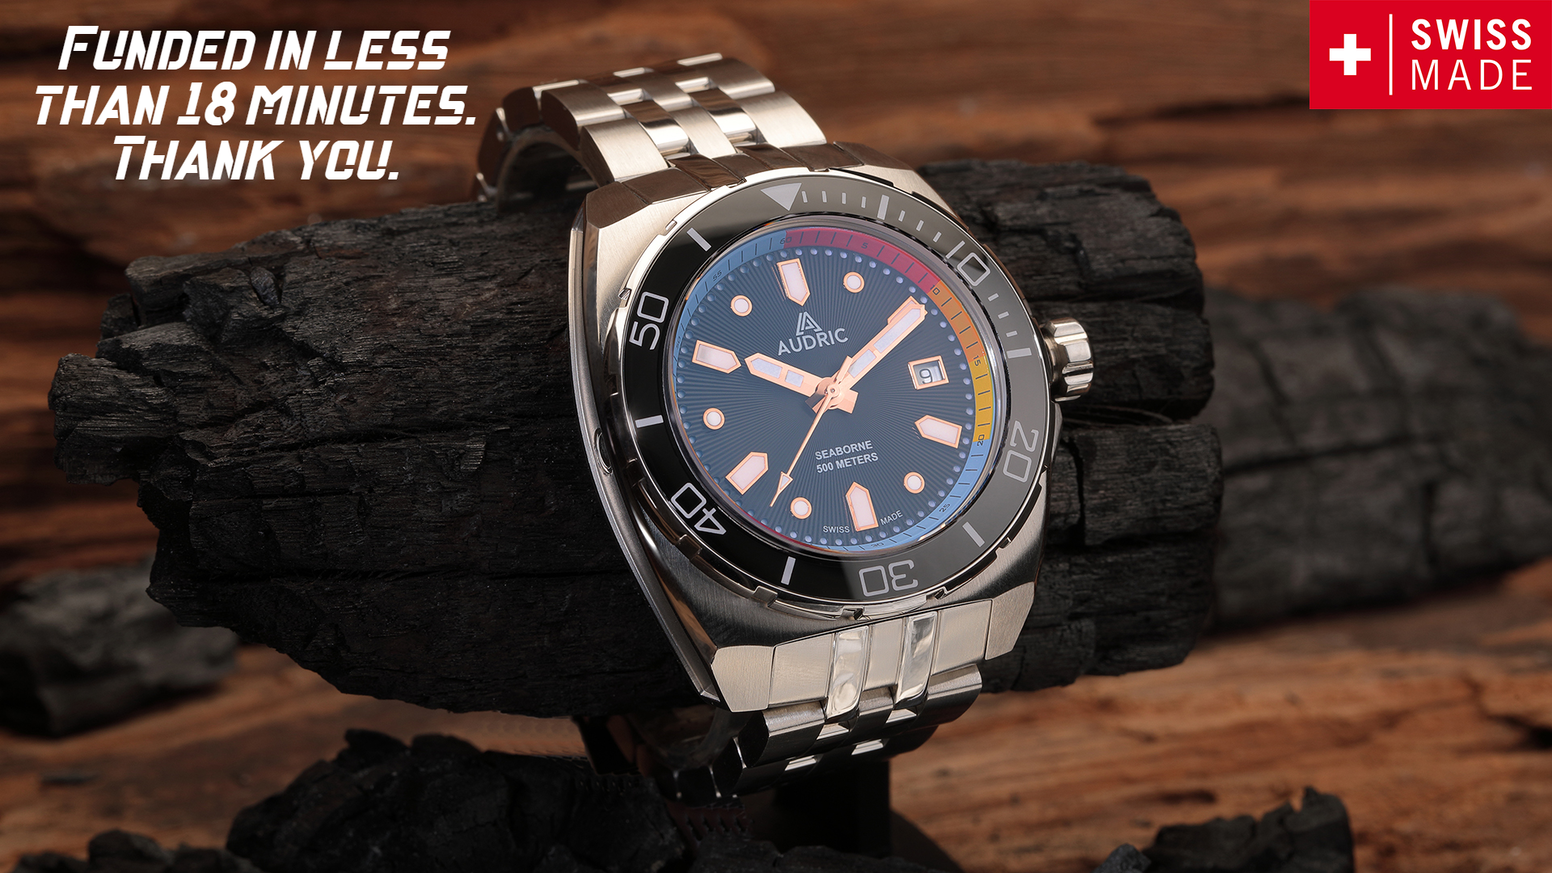 Unique opportunity to secure a sublime SWISS MADE DIVER designed for every occasion. Offering incredible value at an affordable price.